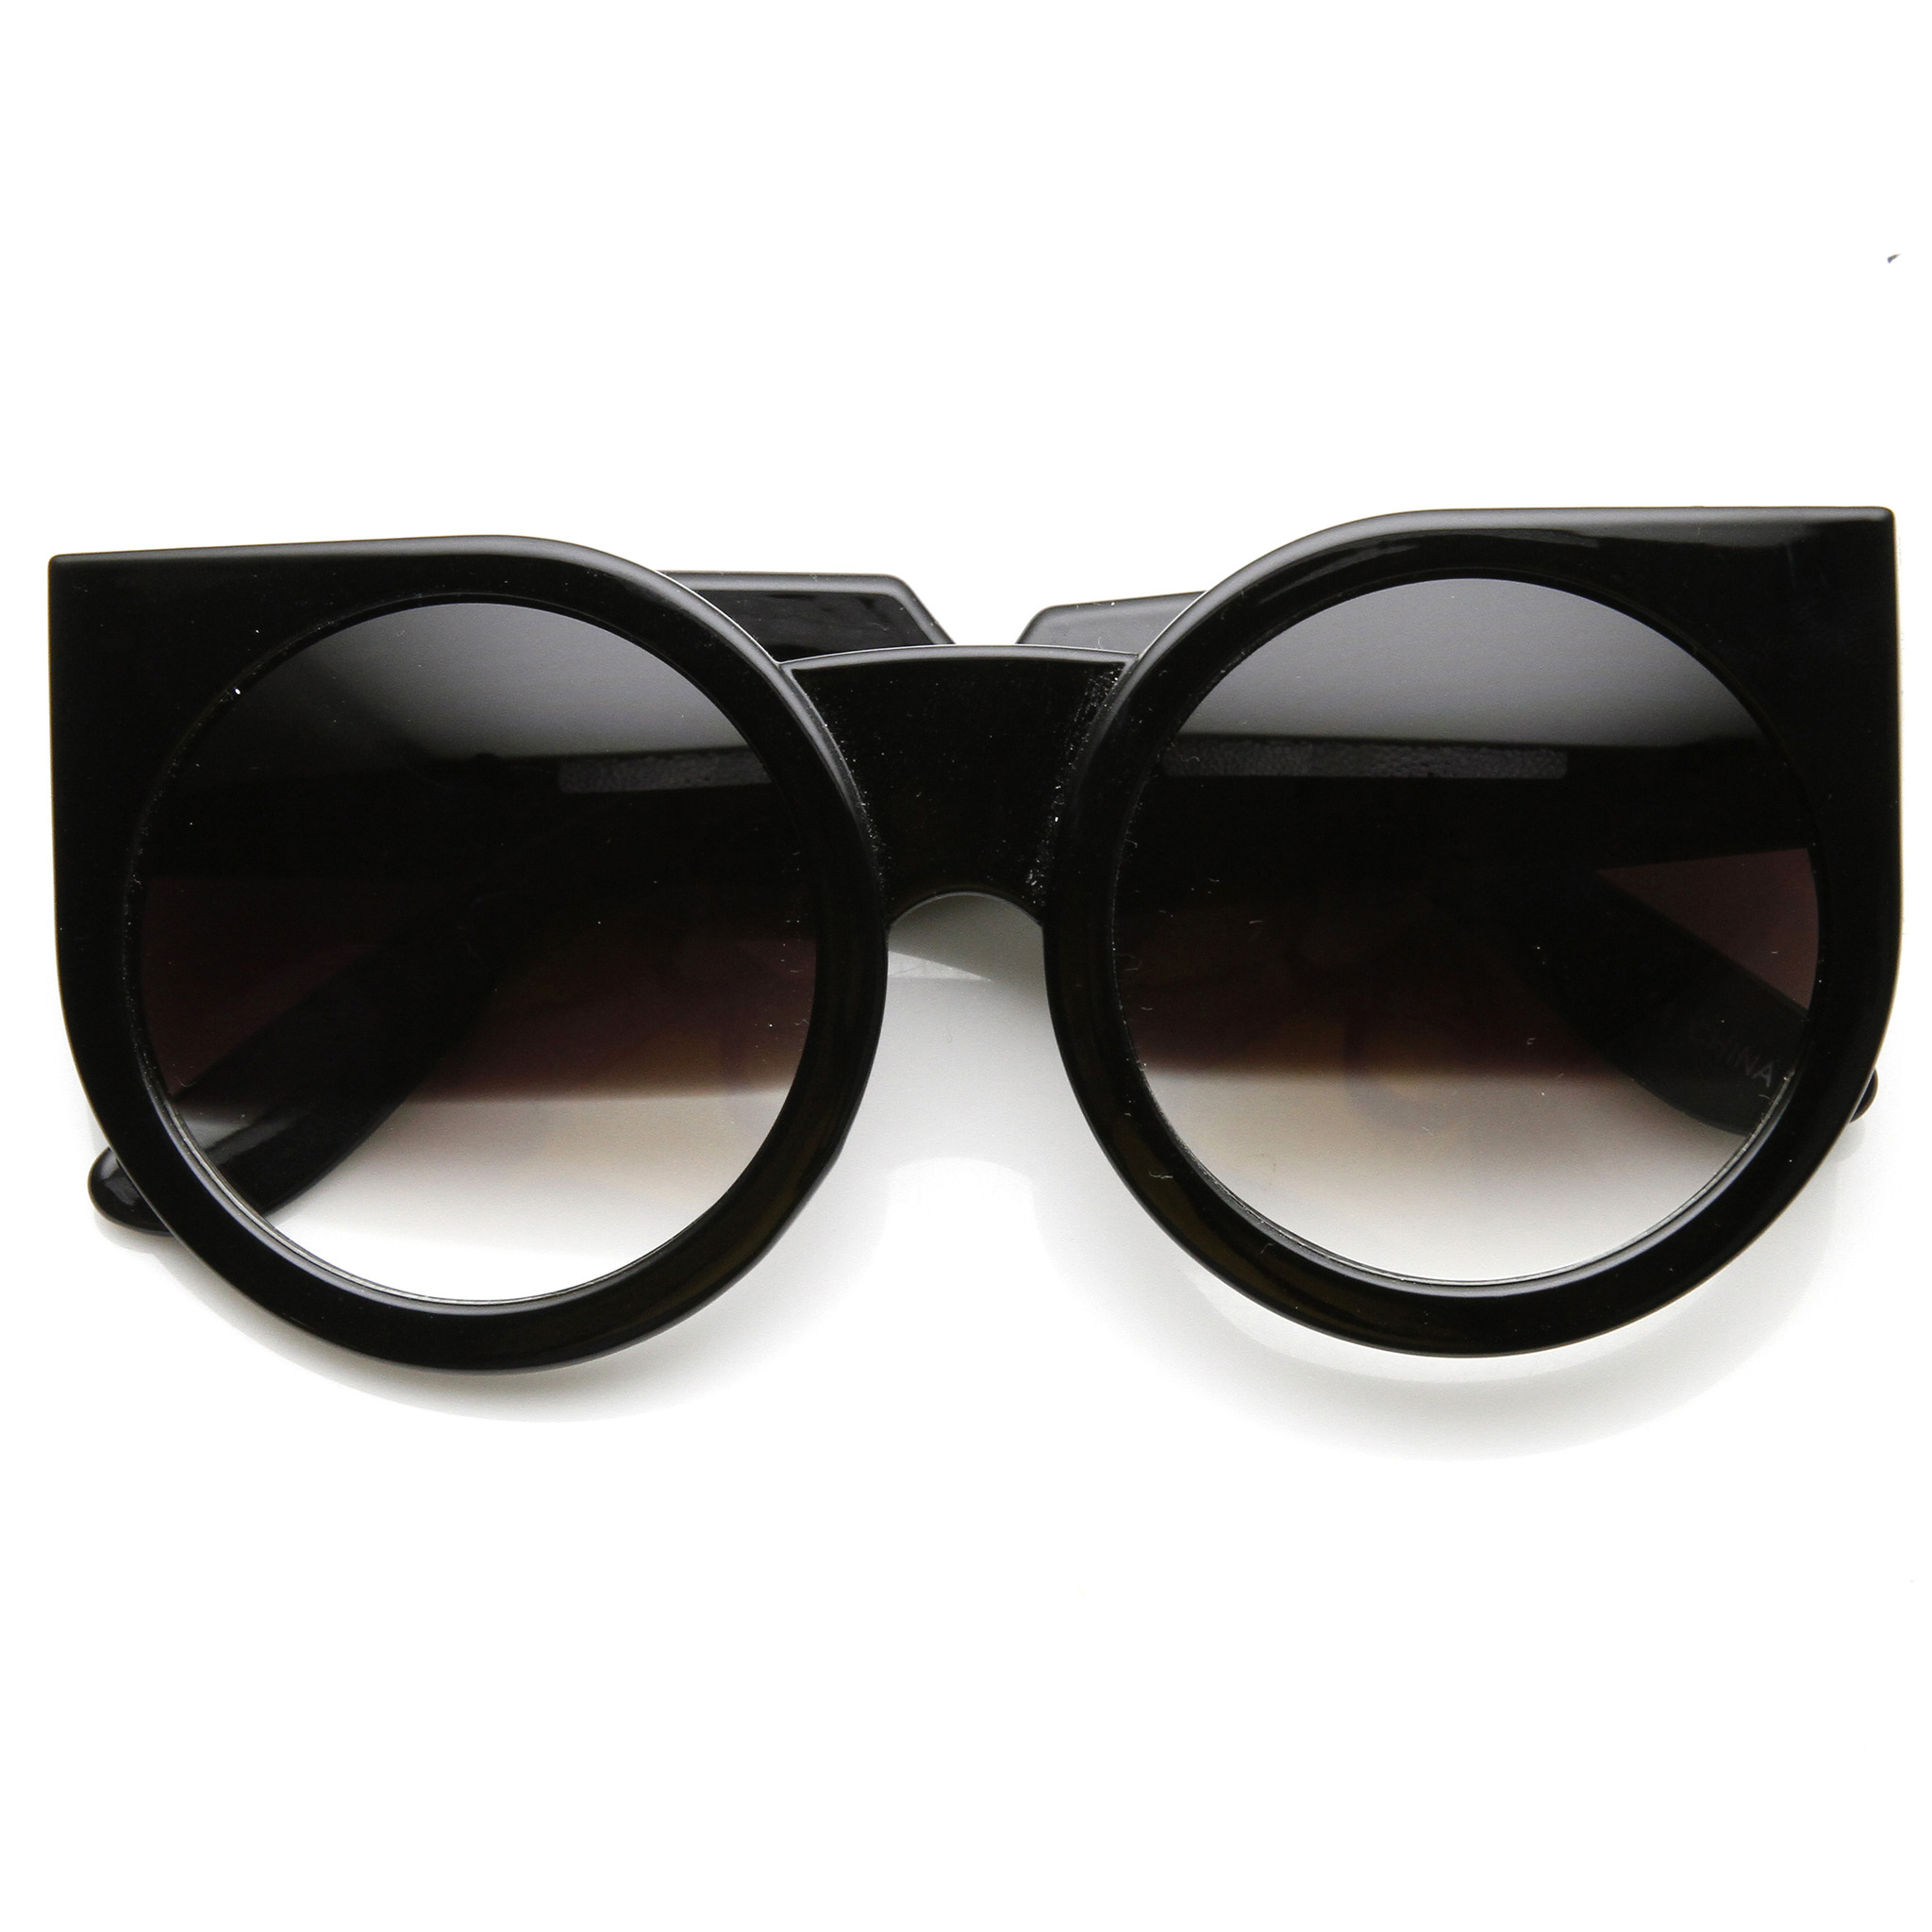 designer fashion glasses  Designer Fashion Super Bold Round Cat Eye Sunglasses 9278